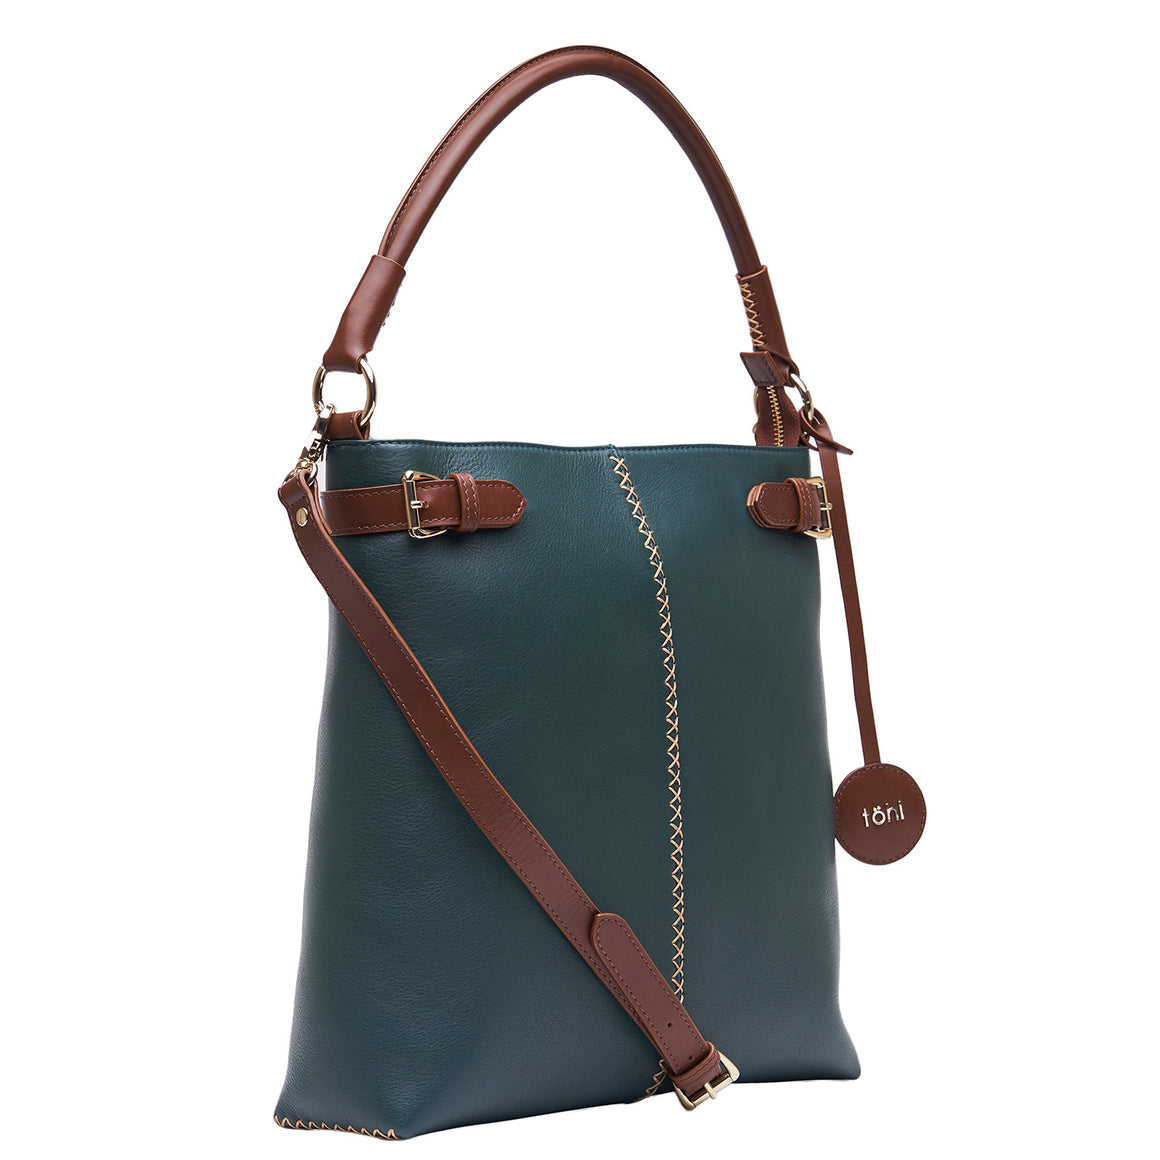 SG 0018 - TOHL WILLOW WOMEN'S SLING & CROSSBODY - FOREST GREEN